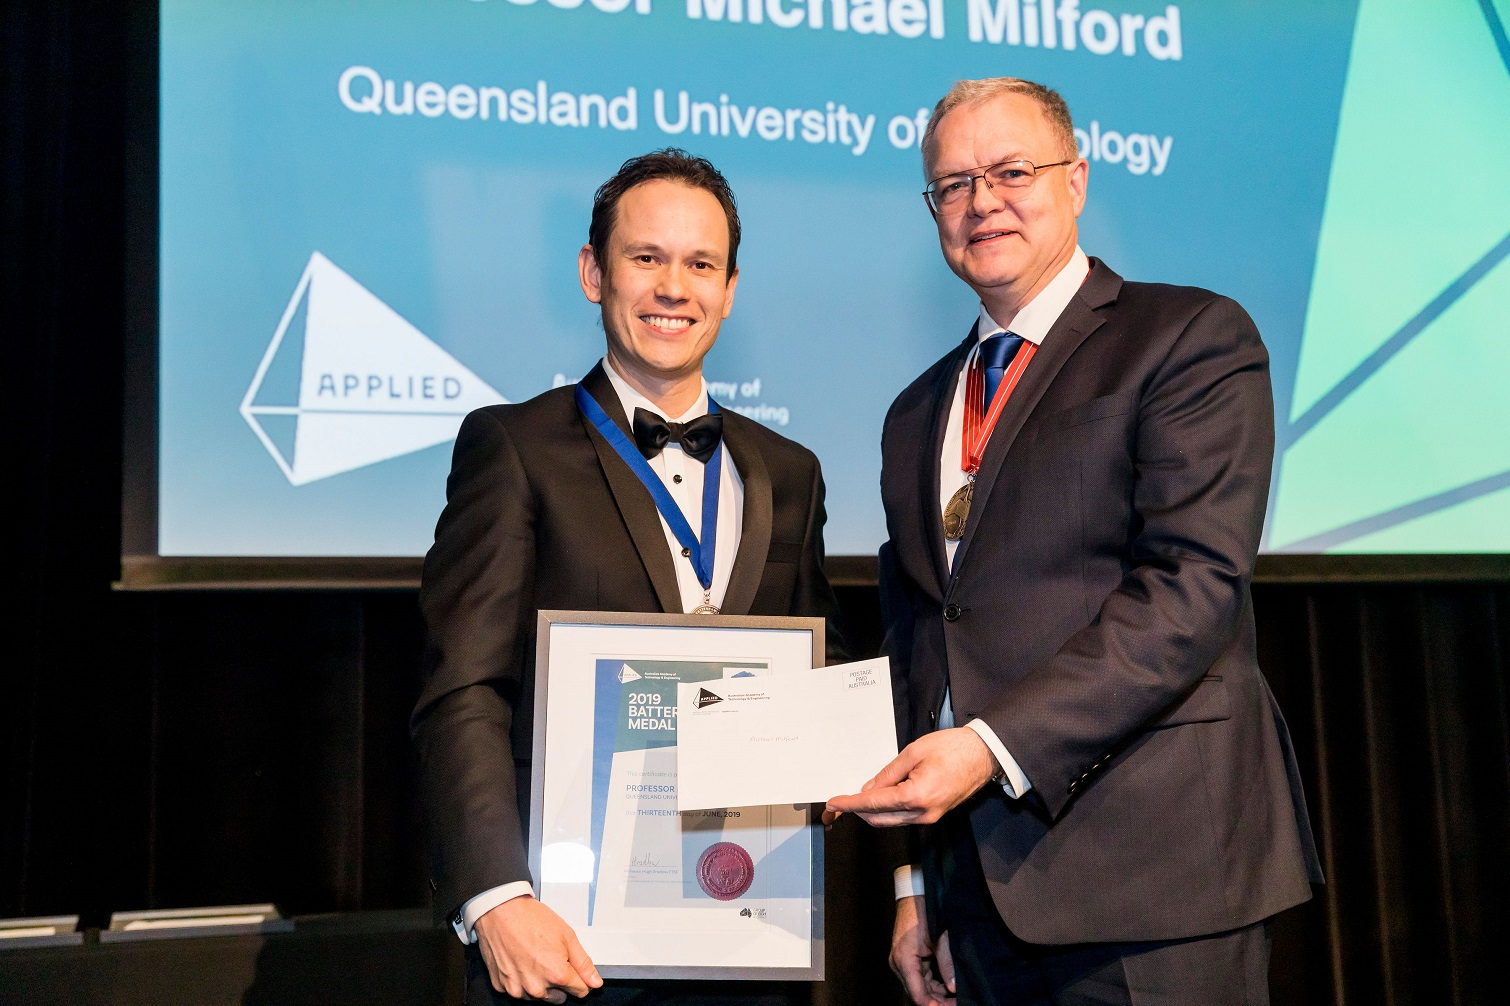 Michael Milford accepts his award from Iven Mareels